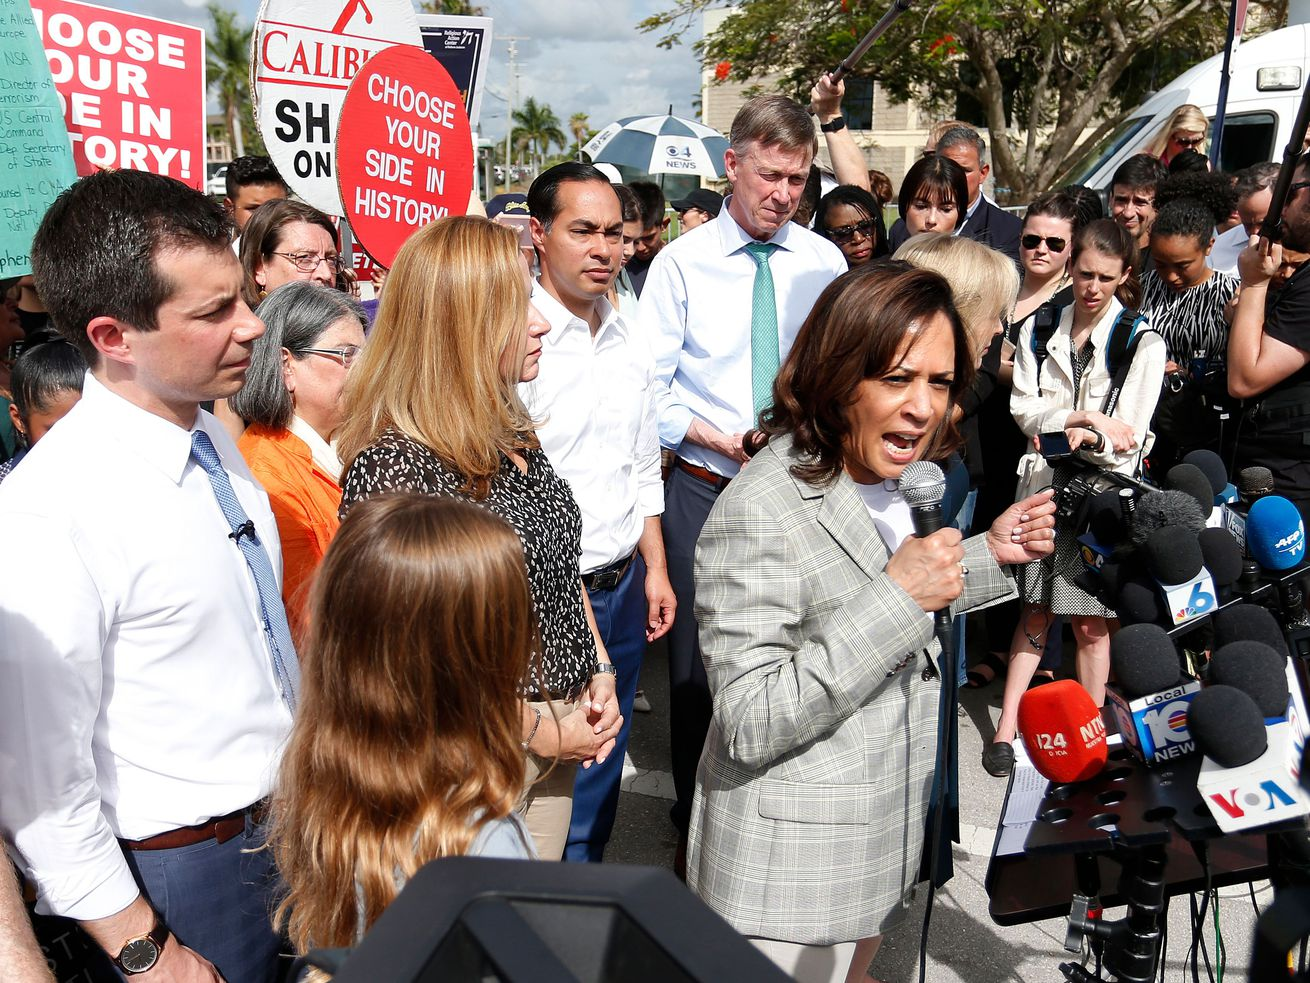 Sen. Kamala Harris speaks at the Homestead detention center, flanked by fellow Democratic presidential candidates.